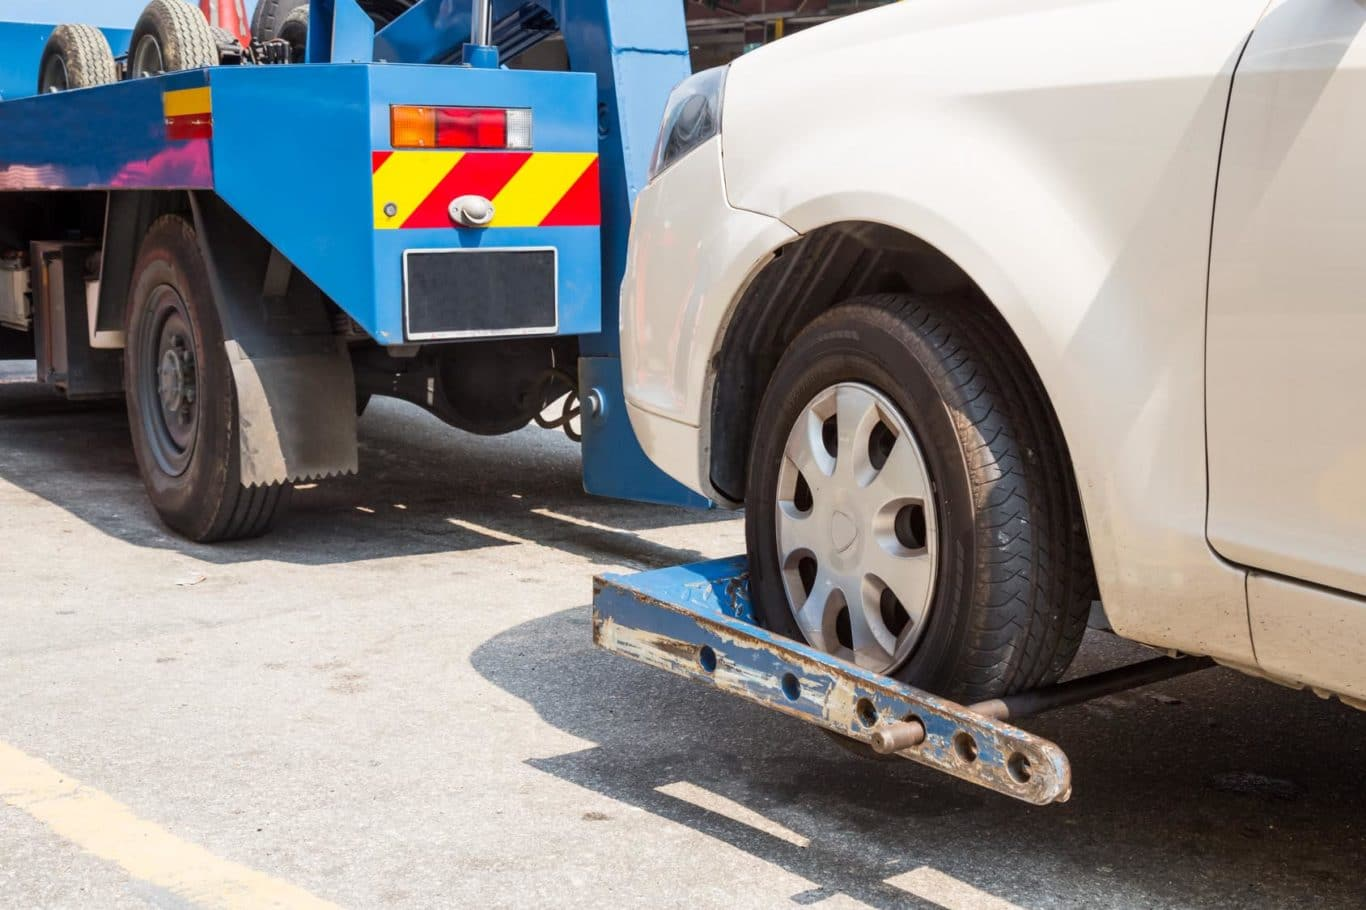 Chapelizod expert Towing services